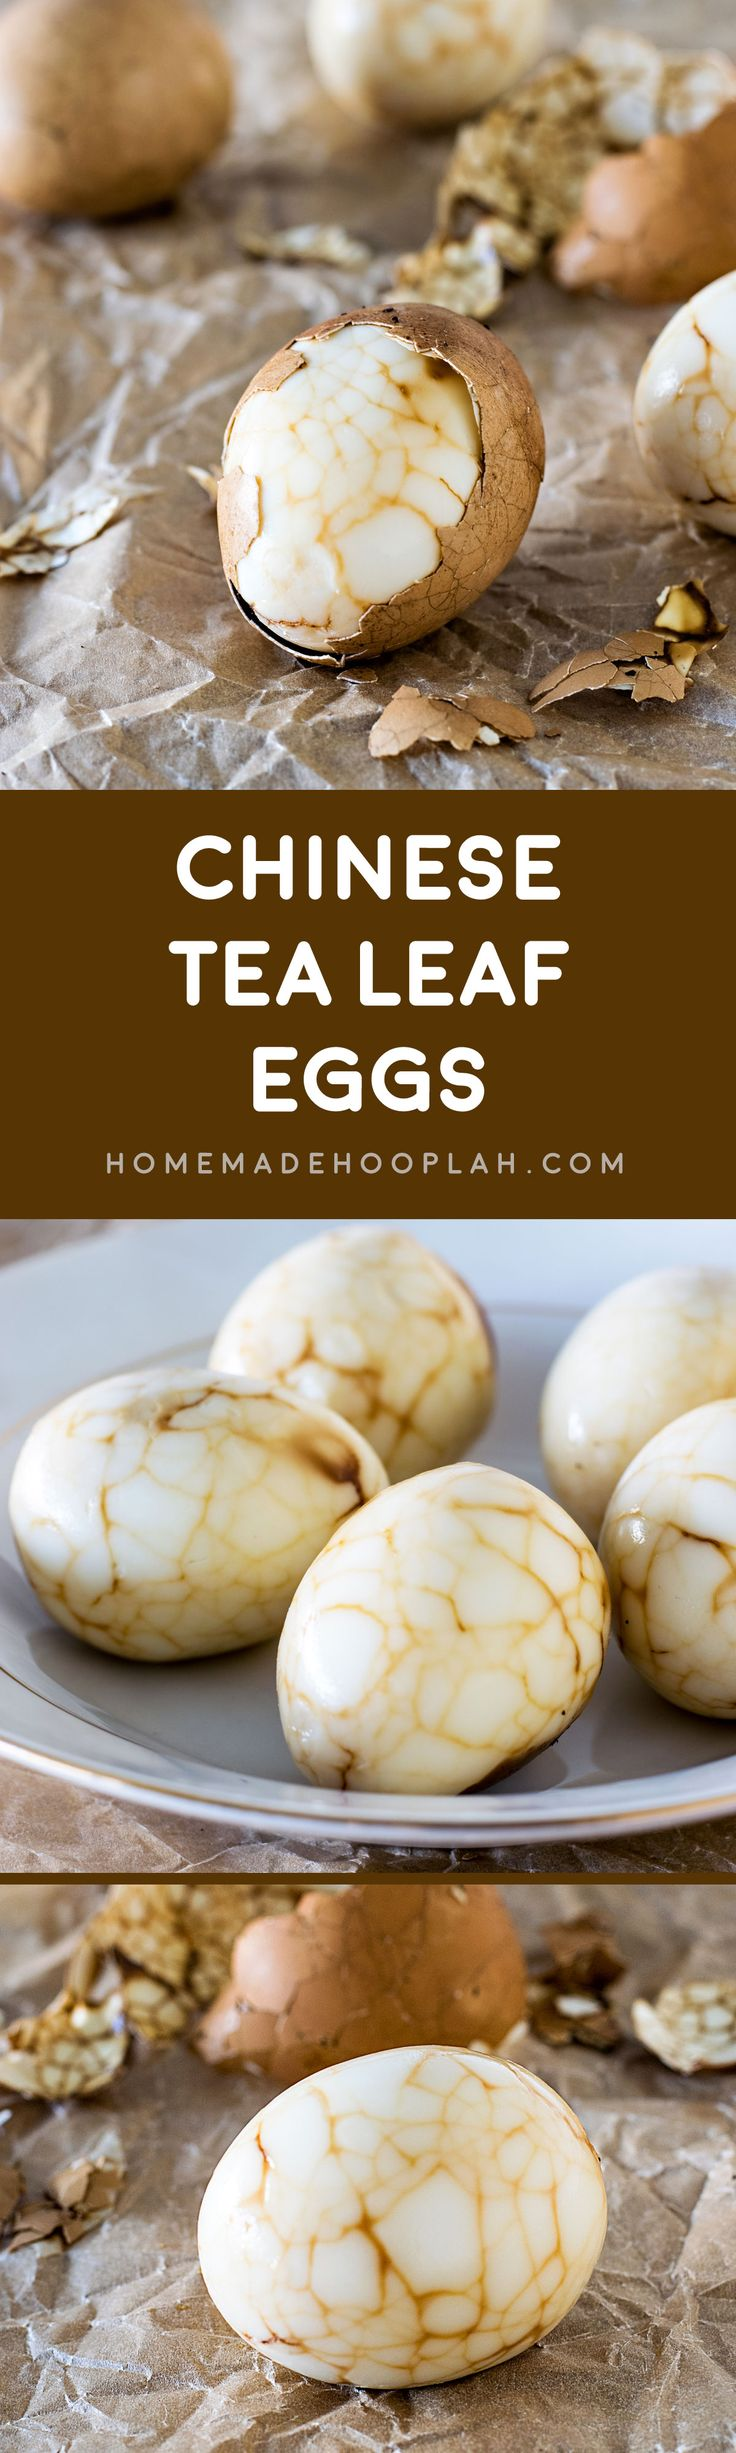 Chinese Tea Leaf Eggs! Celebrate Chinese New Year with this traditional dish, spiked with a touch of orange for good fortune in the year to come! | HomemadeHooplah.com #KikkomanCNY #spon @kikkomanusa